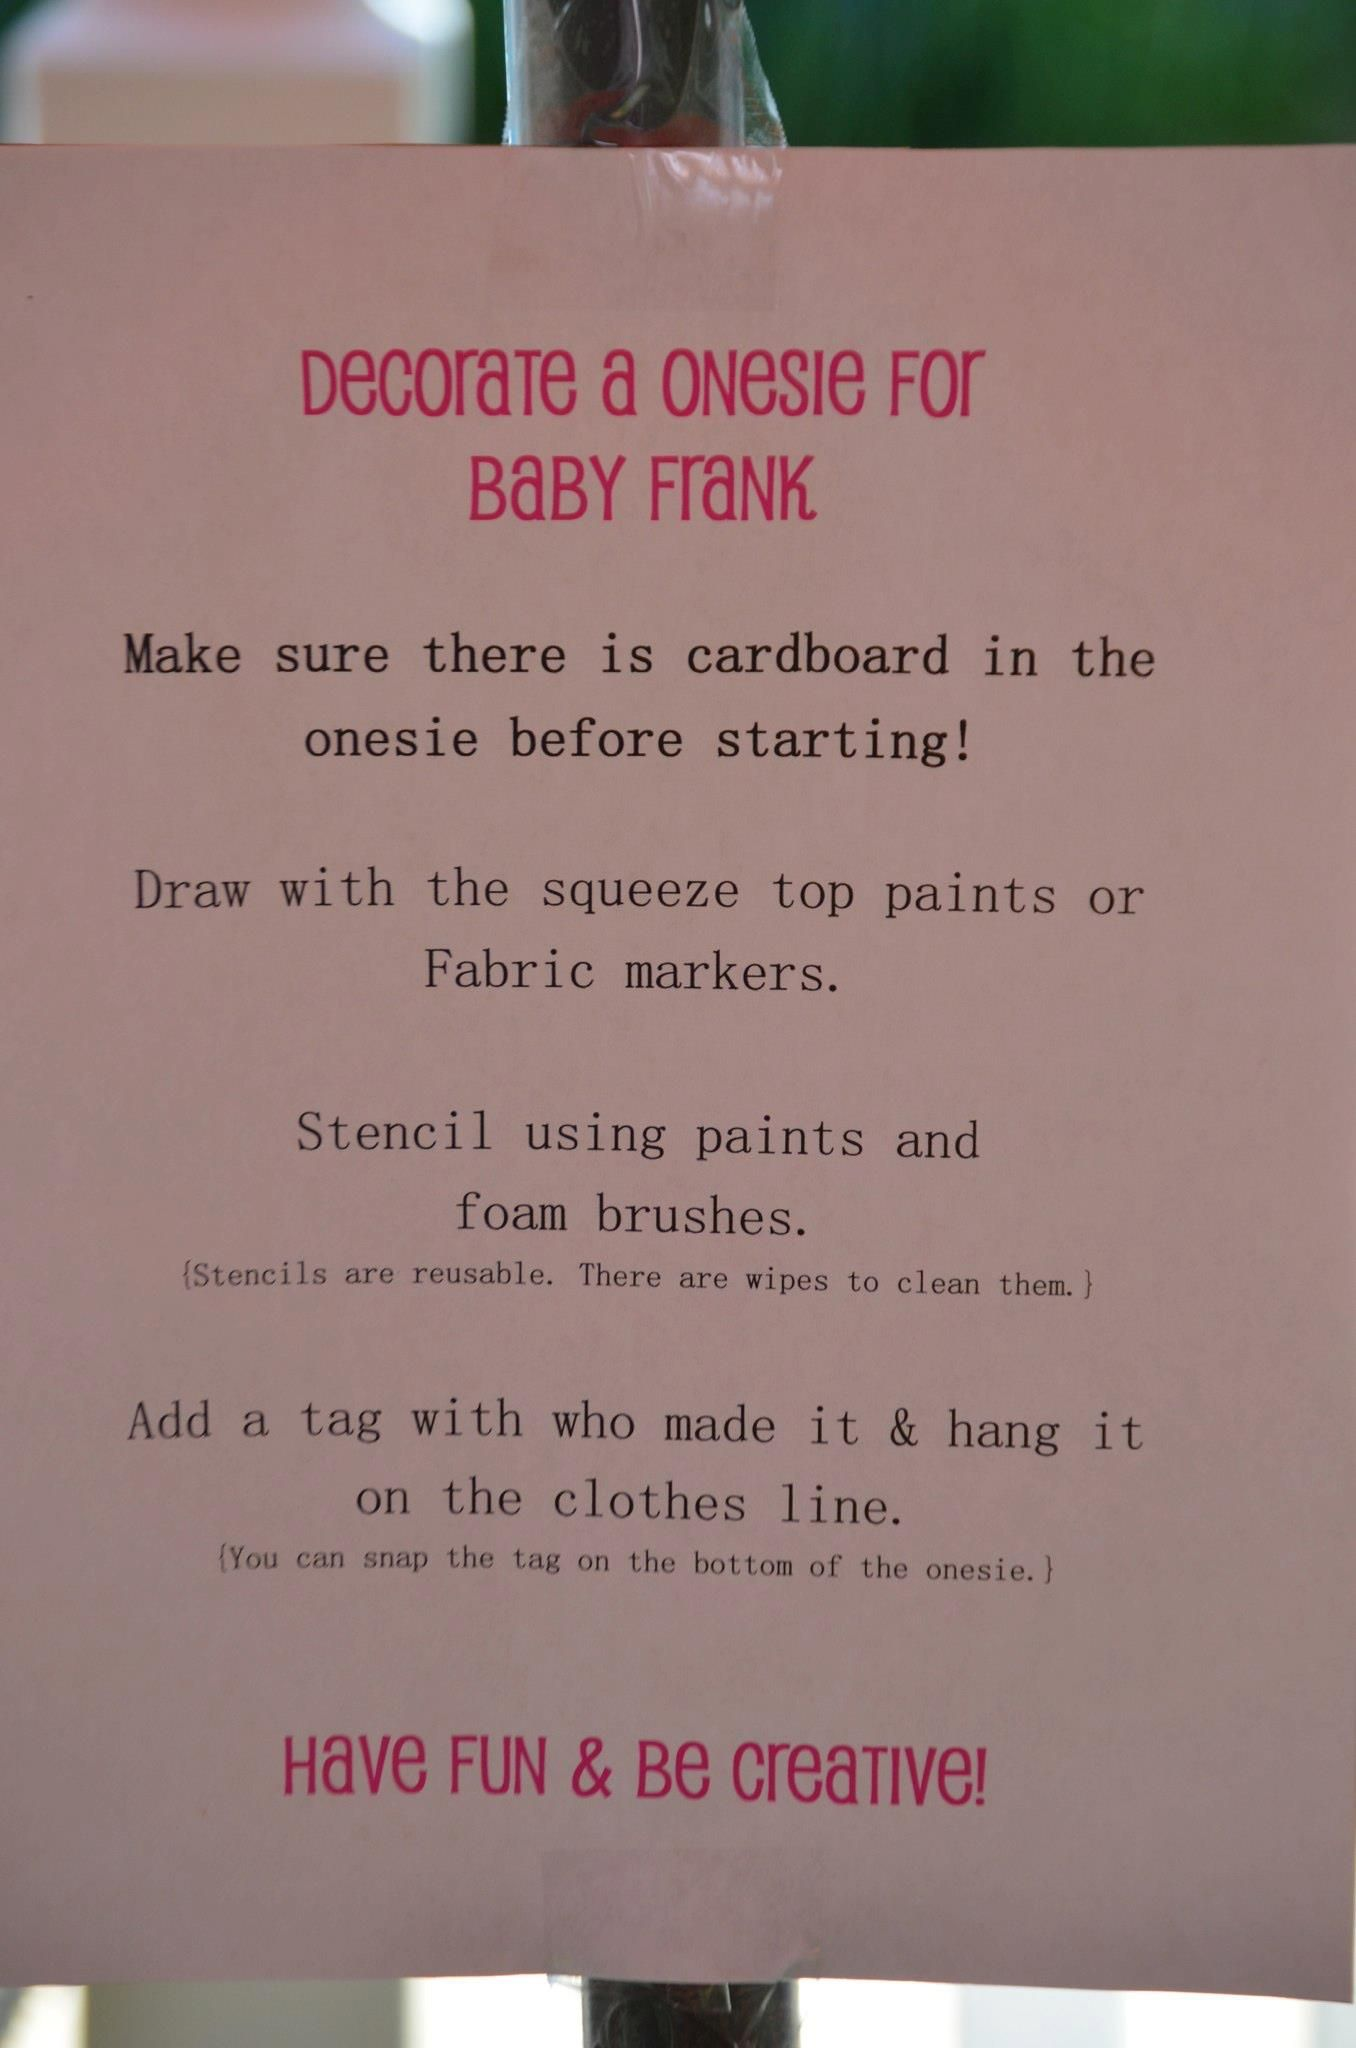 7c5ce0211999c Decorate a Onesie Sign | Cute bby shower ideas | Baby shower signs ...